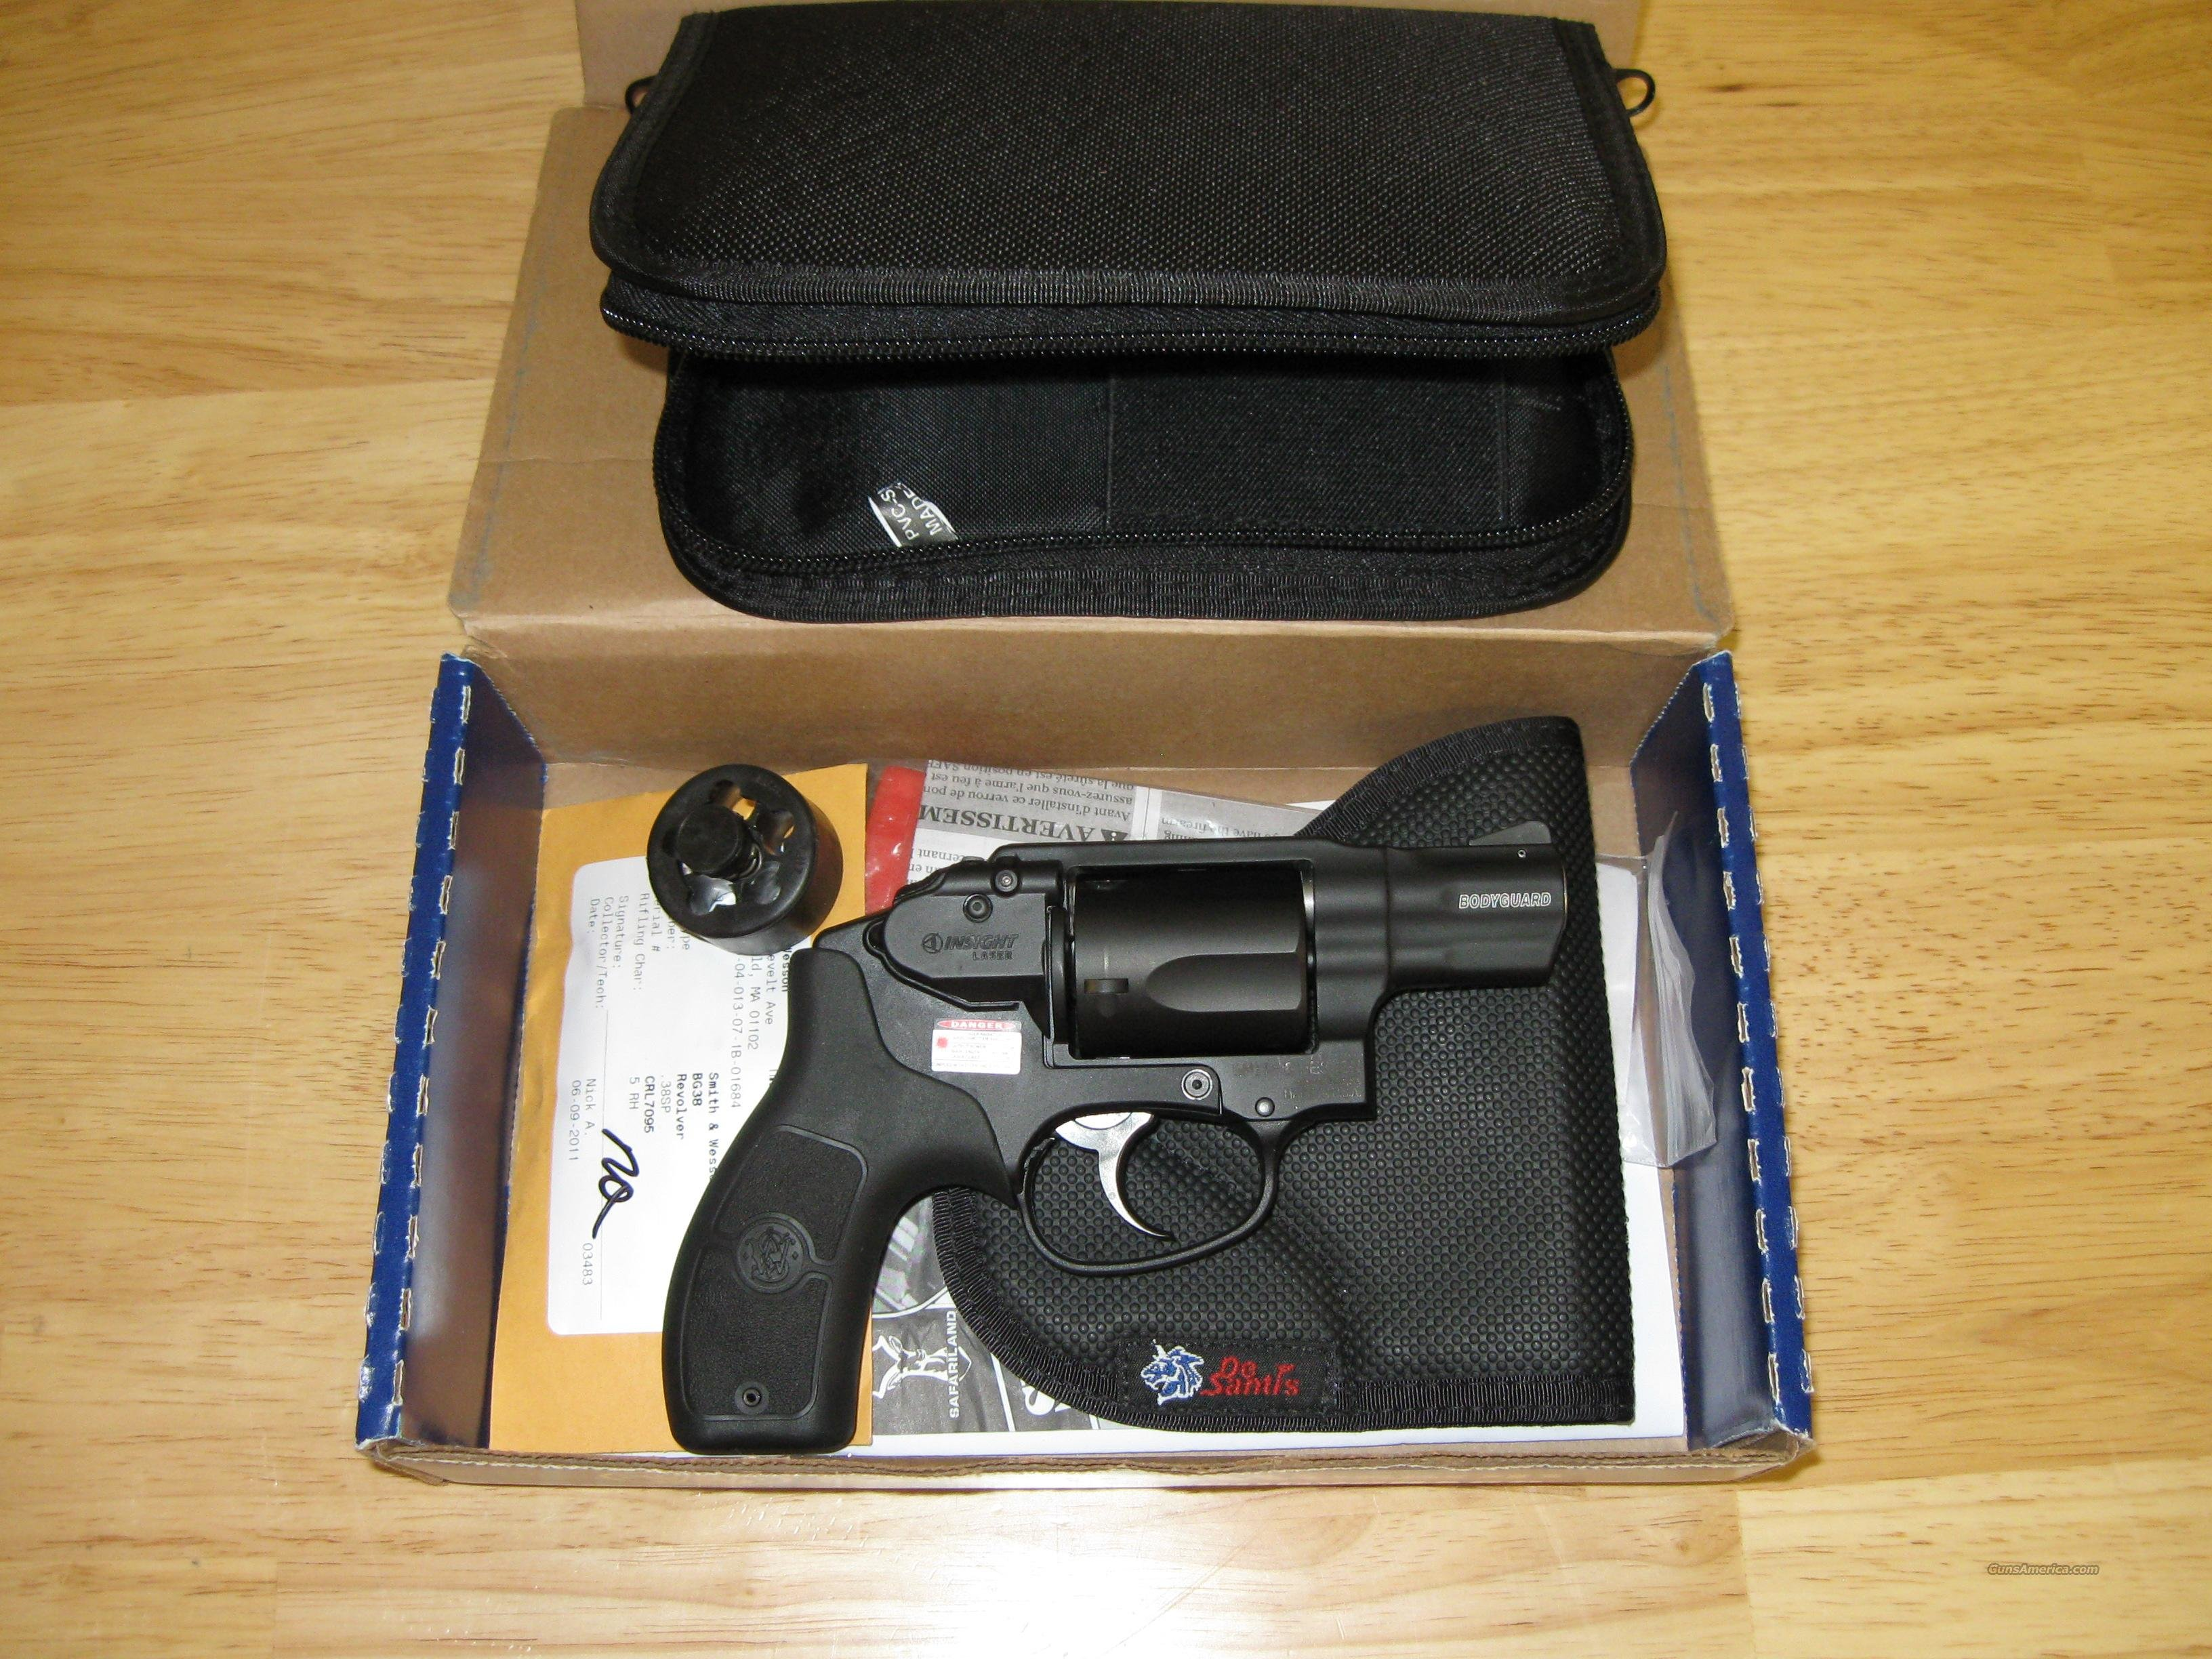 Smith & Wesson Bodyguard Revolver with laser, 38Sp, 5 Rd  Guns > Pistols > Smith & Wesson Revolvers > Pocket Pistols